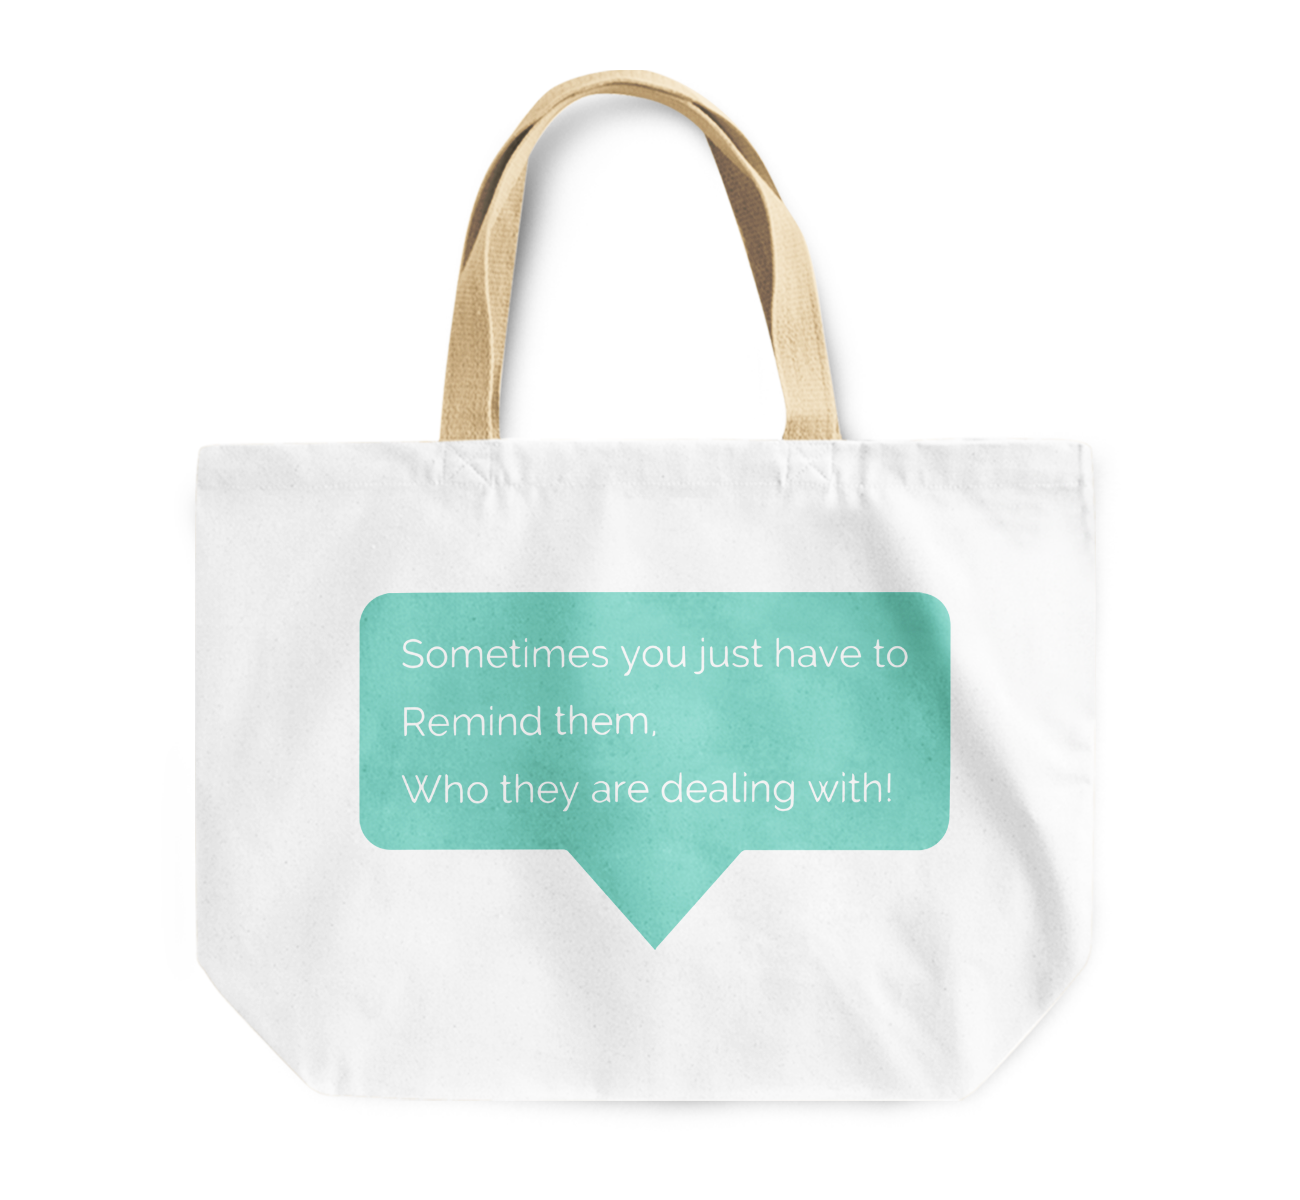 Tote Bag Motivational Inspirational Quote Reusable Shopping Bag Some Times Remind People By Loud Universe